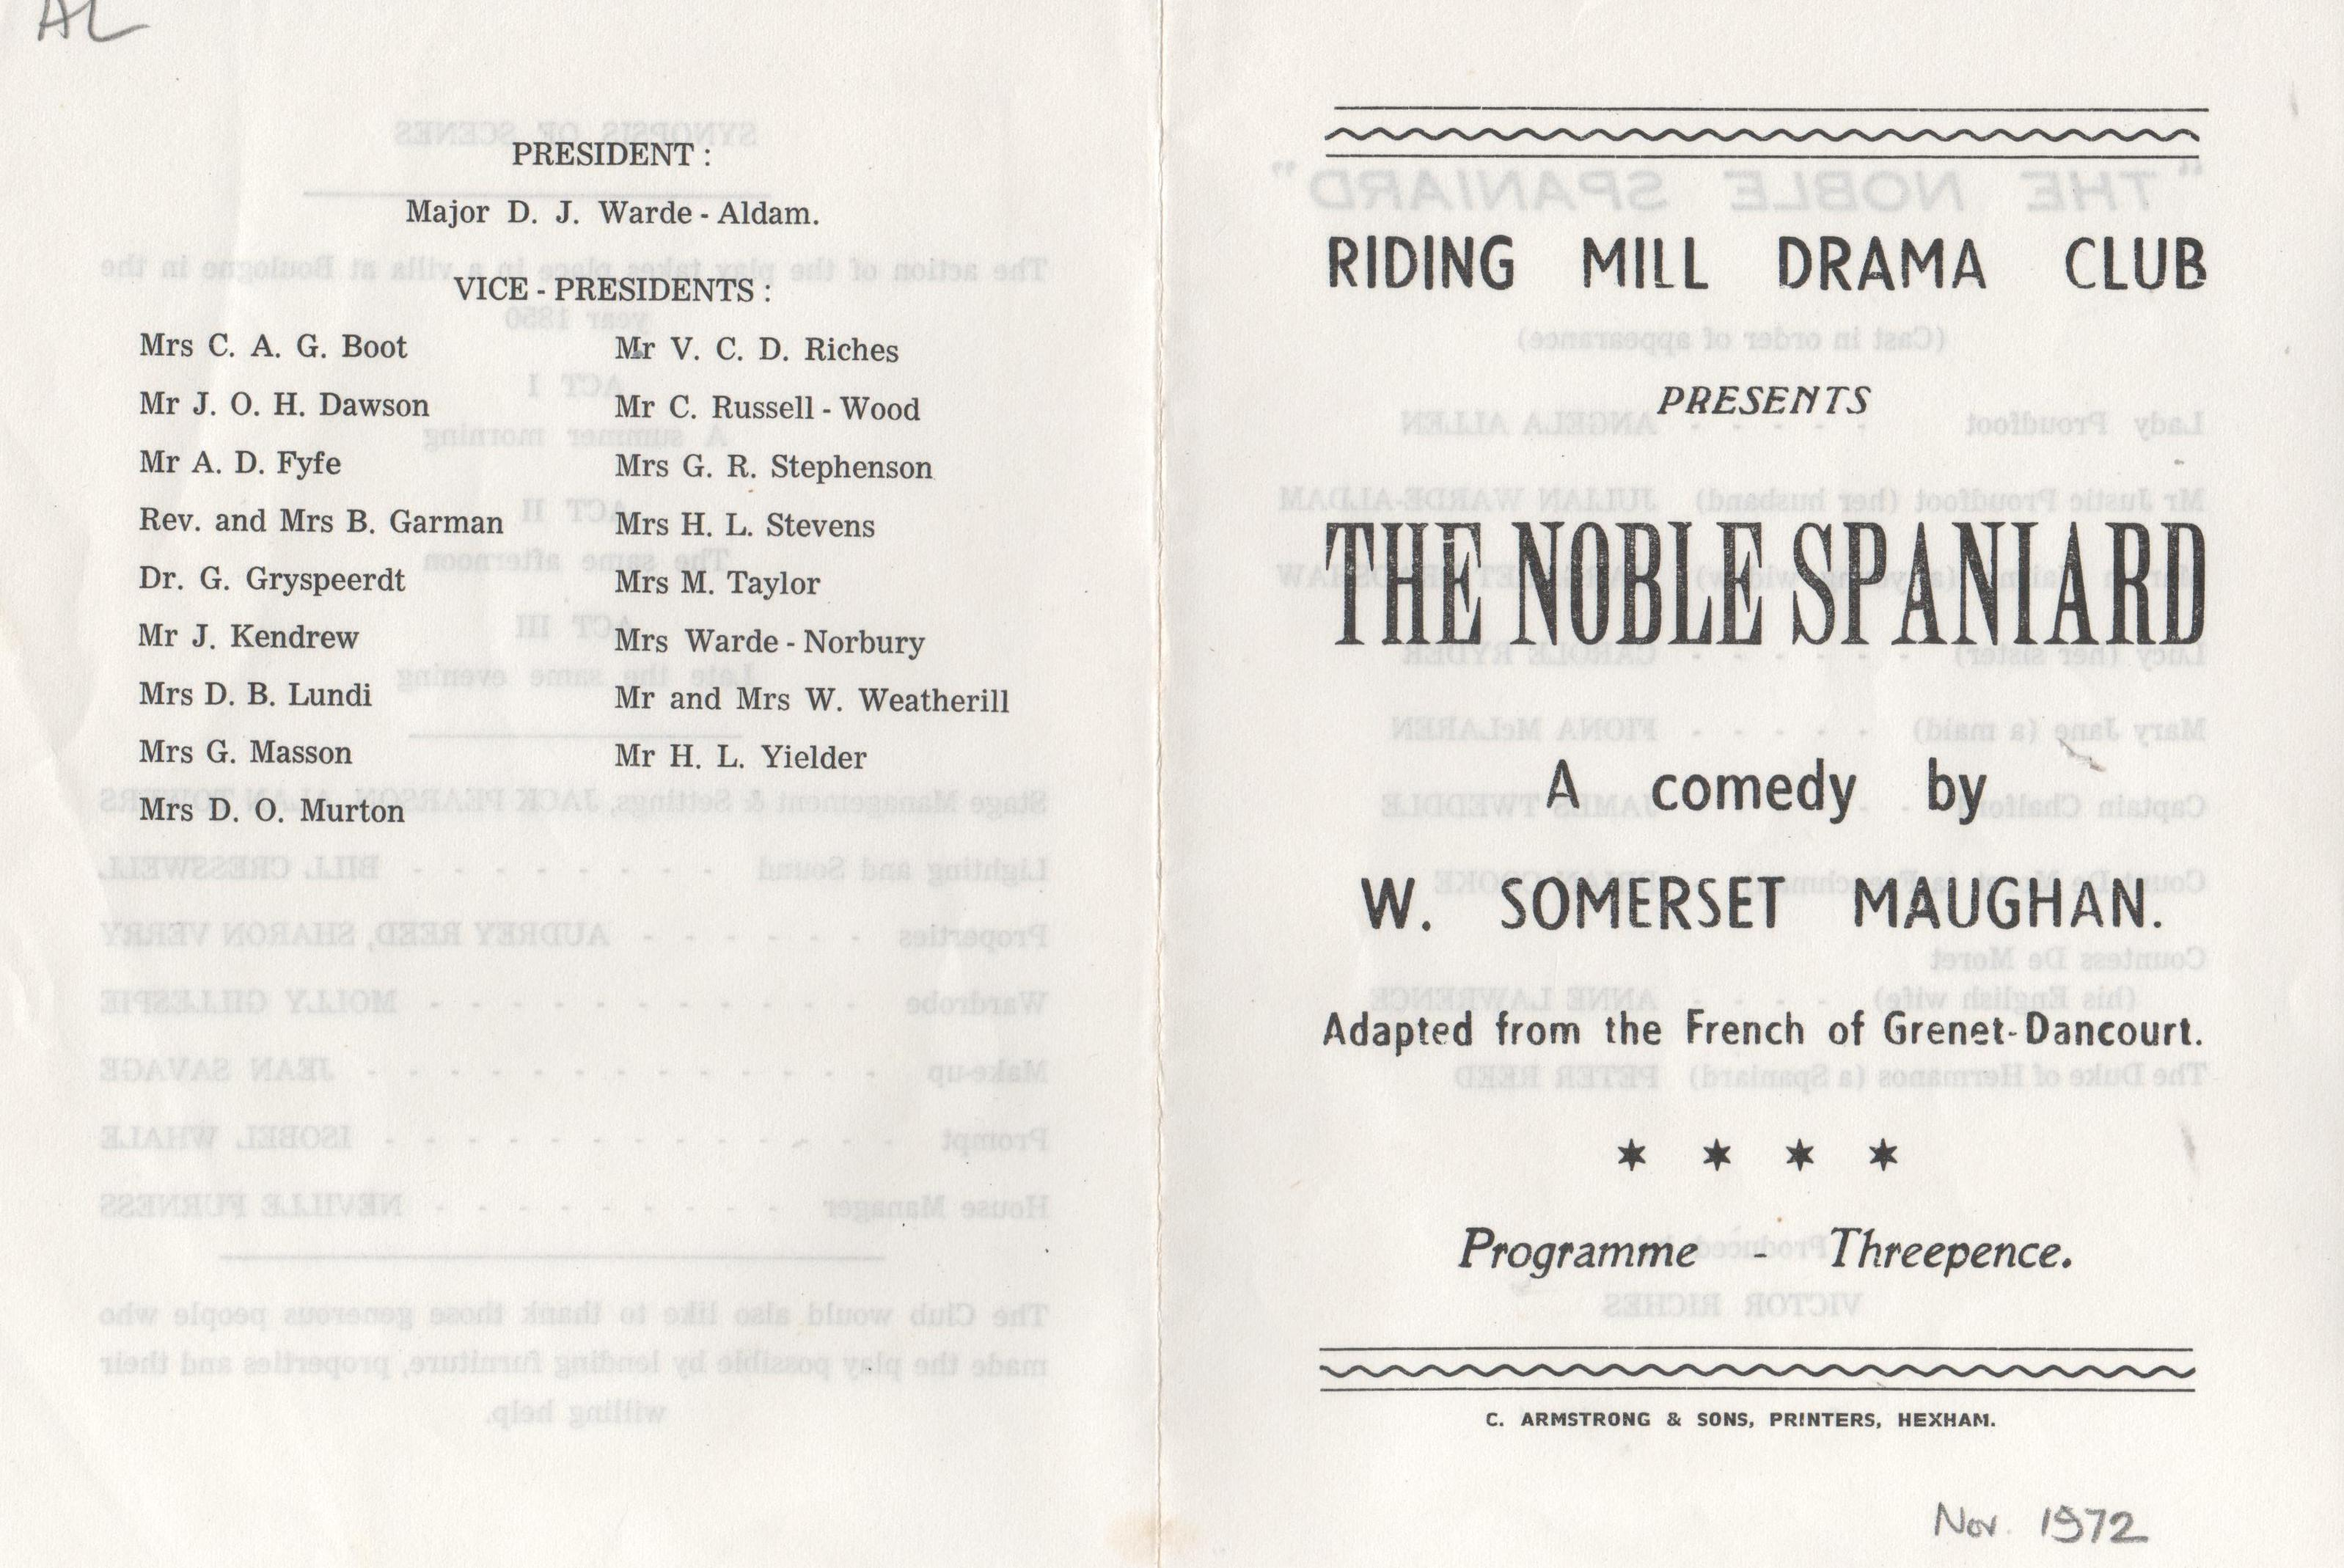 1972,Riding Mill Drama Club, The Nobel S